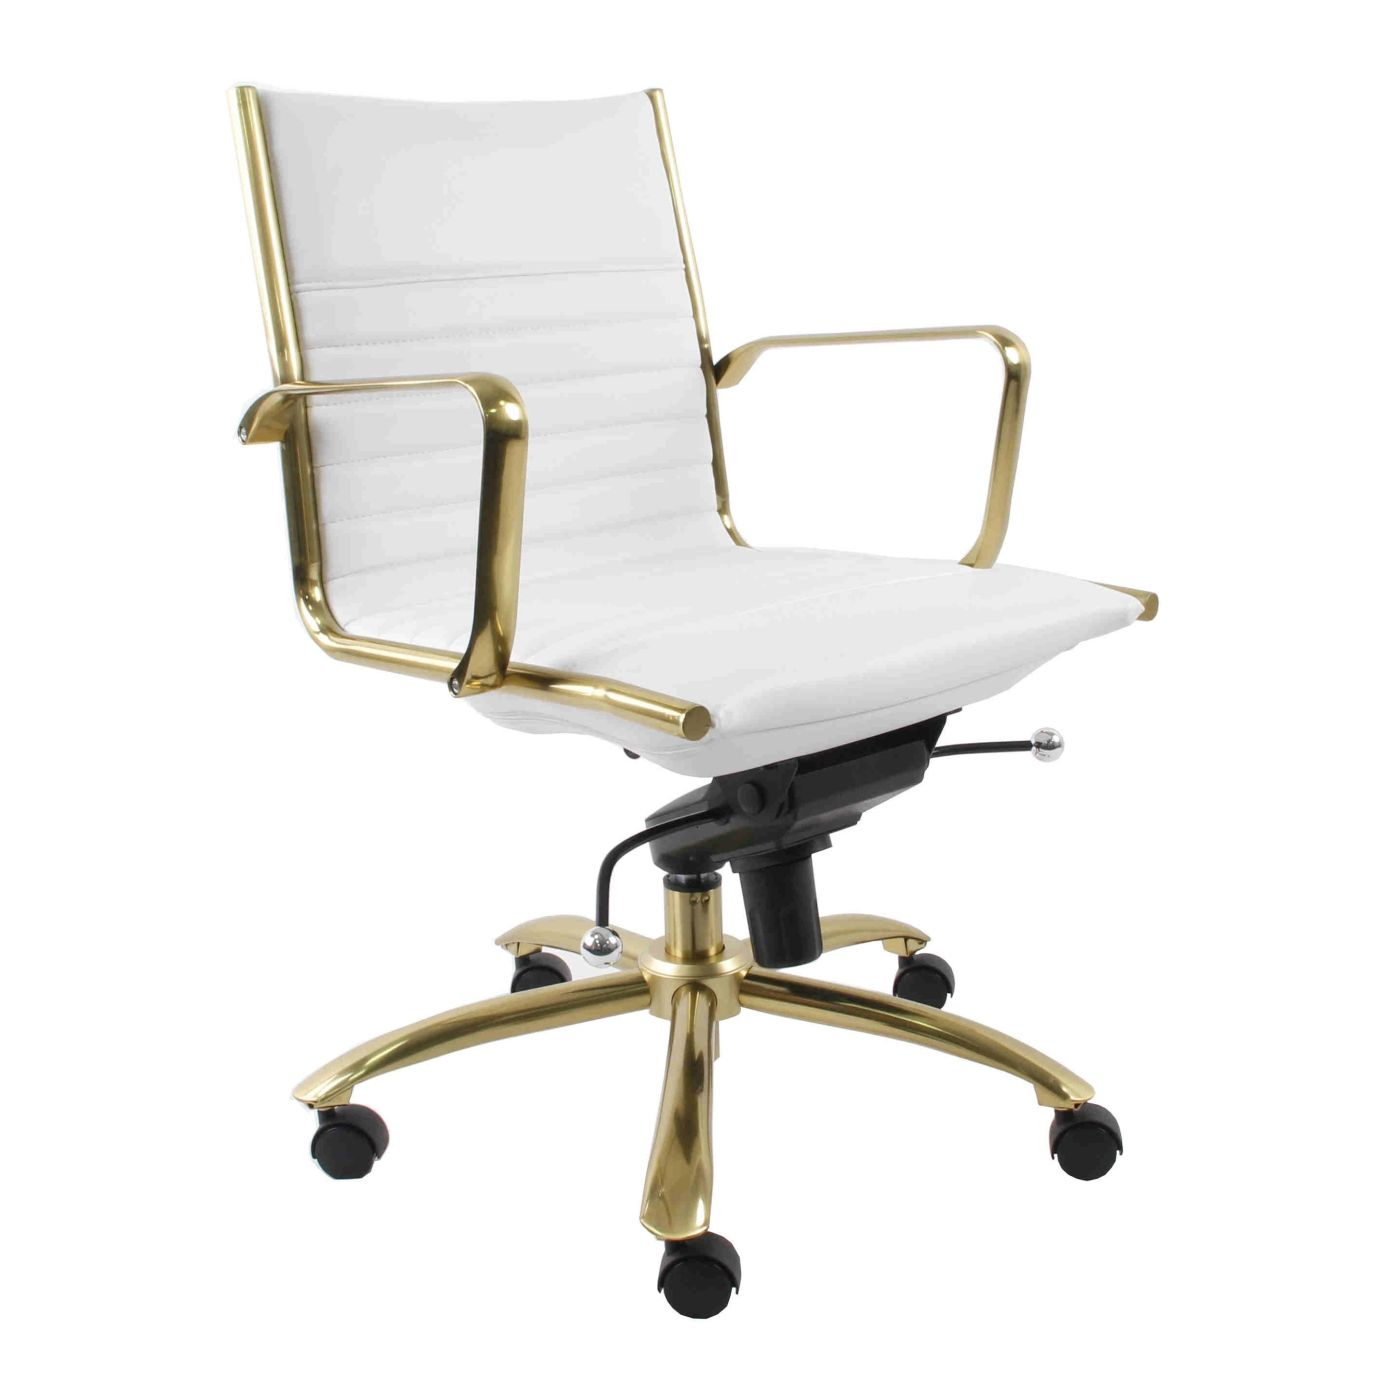 Amazing Buy Euro Style Euro 10674Wht Dirk Low Back Office Chair In White With Brushed Gold Base At Contemporary Furniture Warehouse Ibusinesslaw Wood Chair Design Ideas Ibusinesslaworg